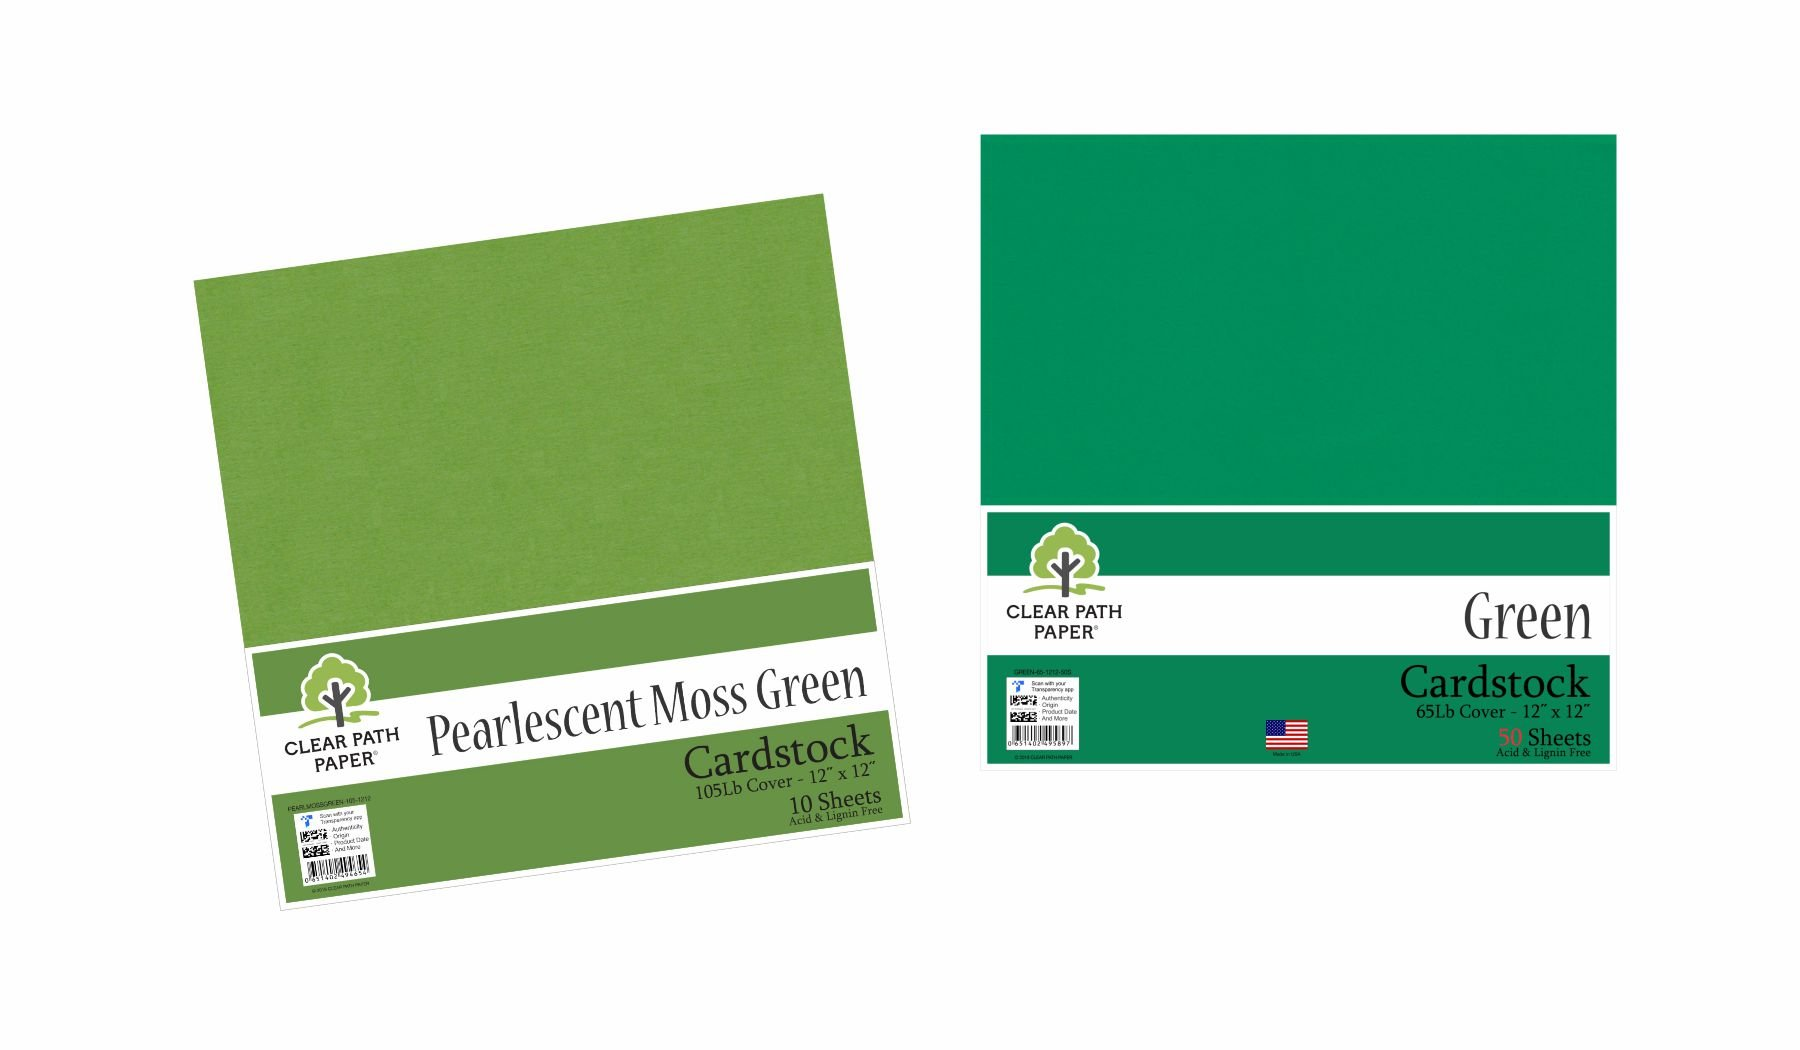 Image of an Amazon bundle of Green and Pearlescent Moss Green cardstock packs